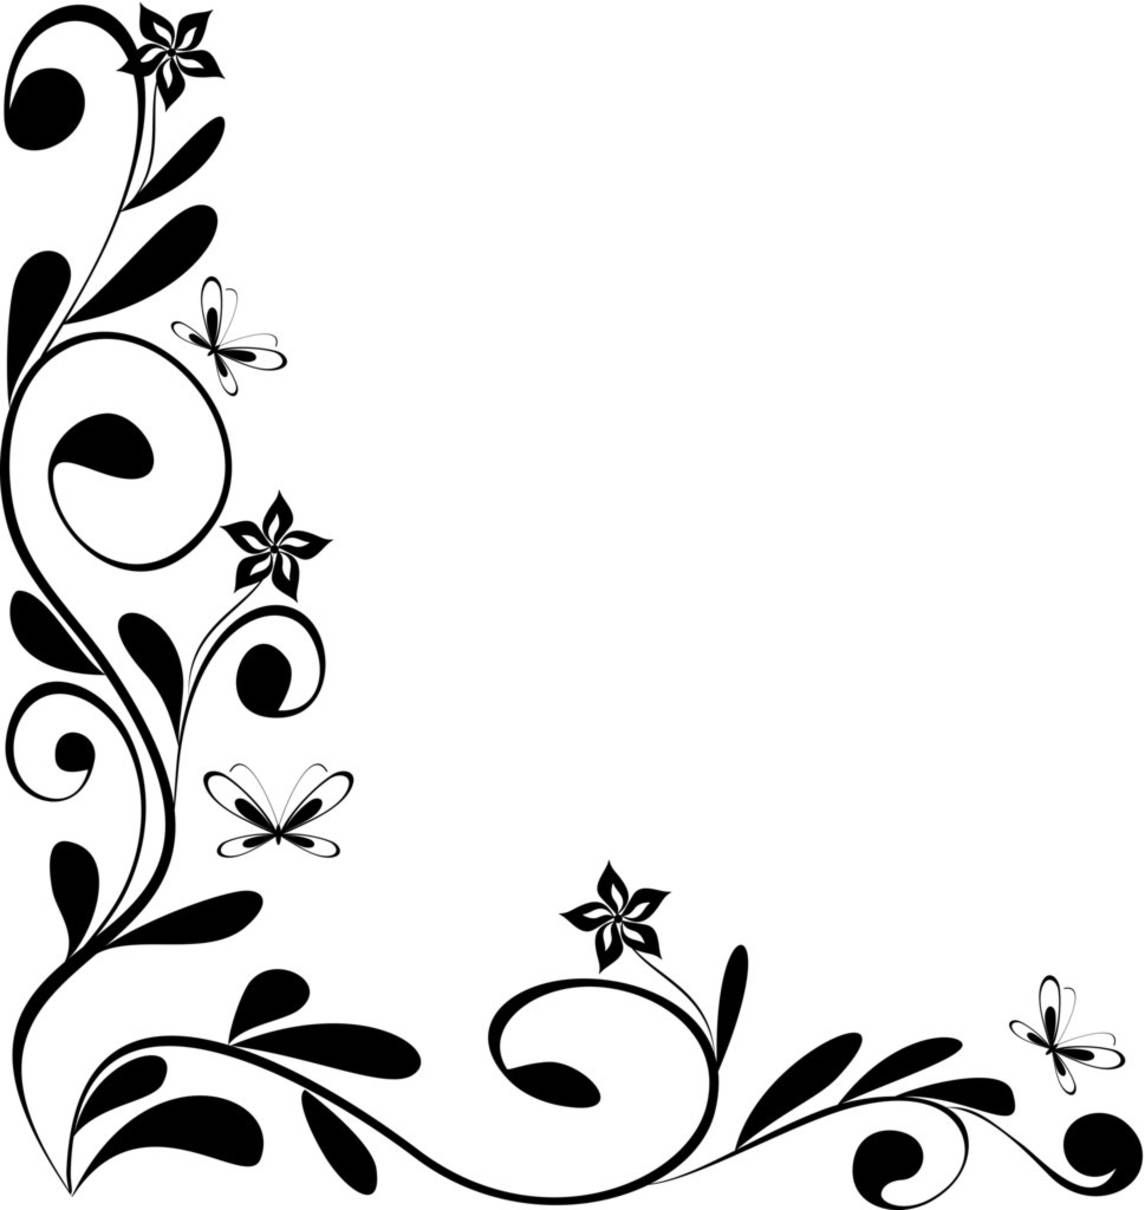 Page Border Flower Designs For A4 Size Paper Valoblogi Com